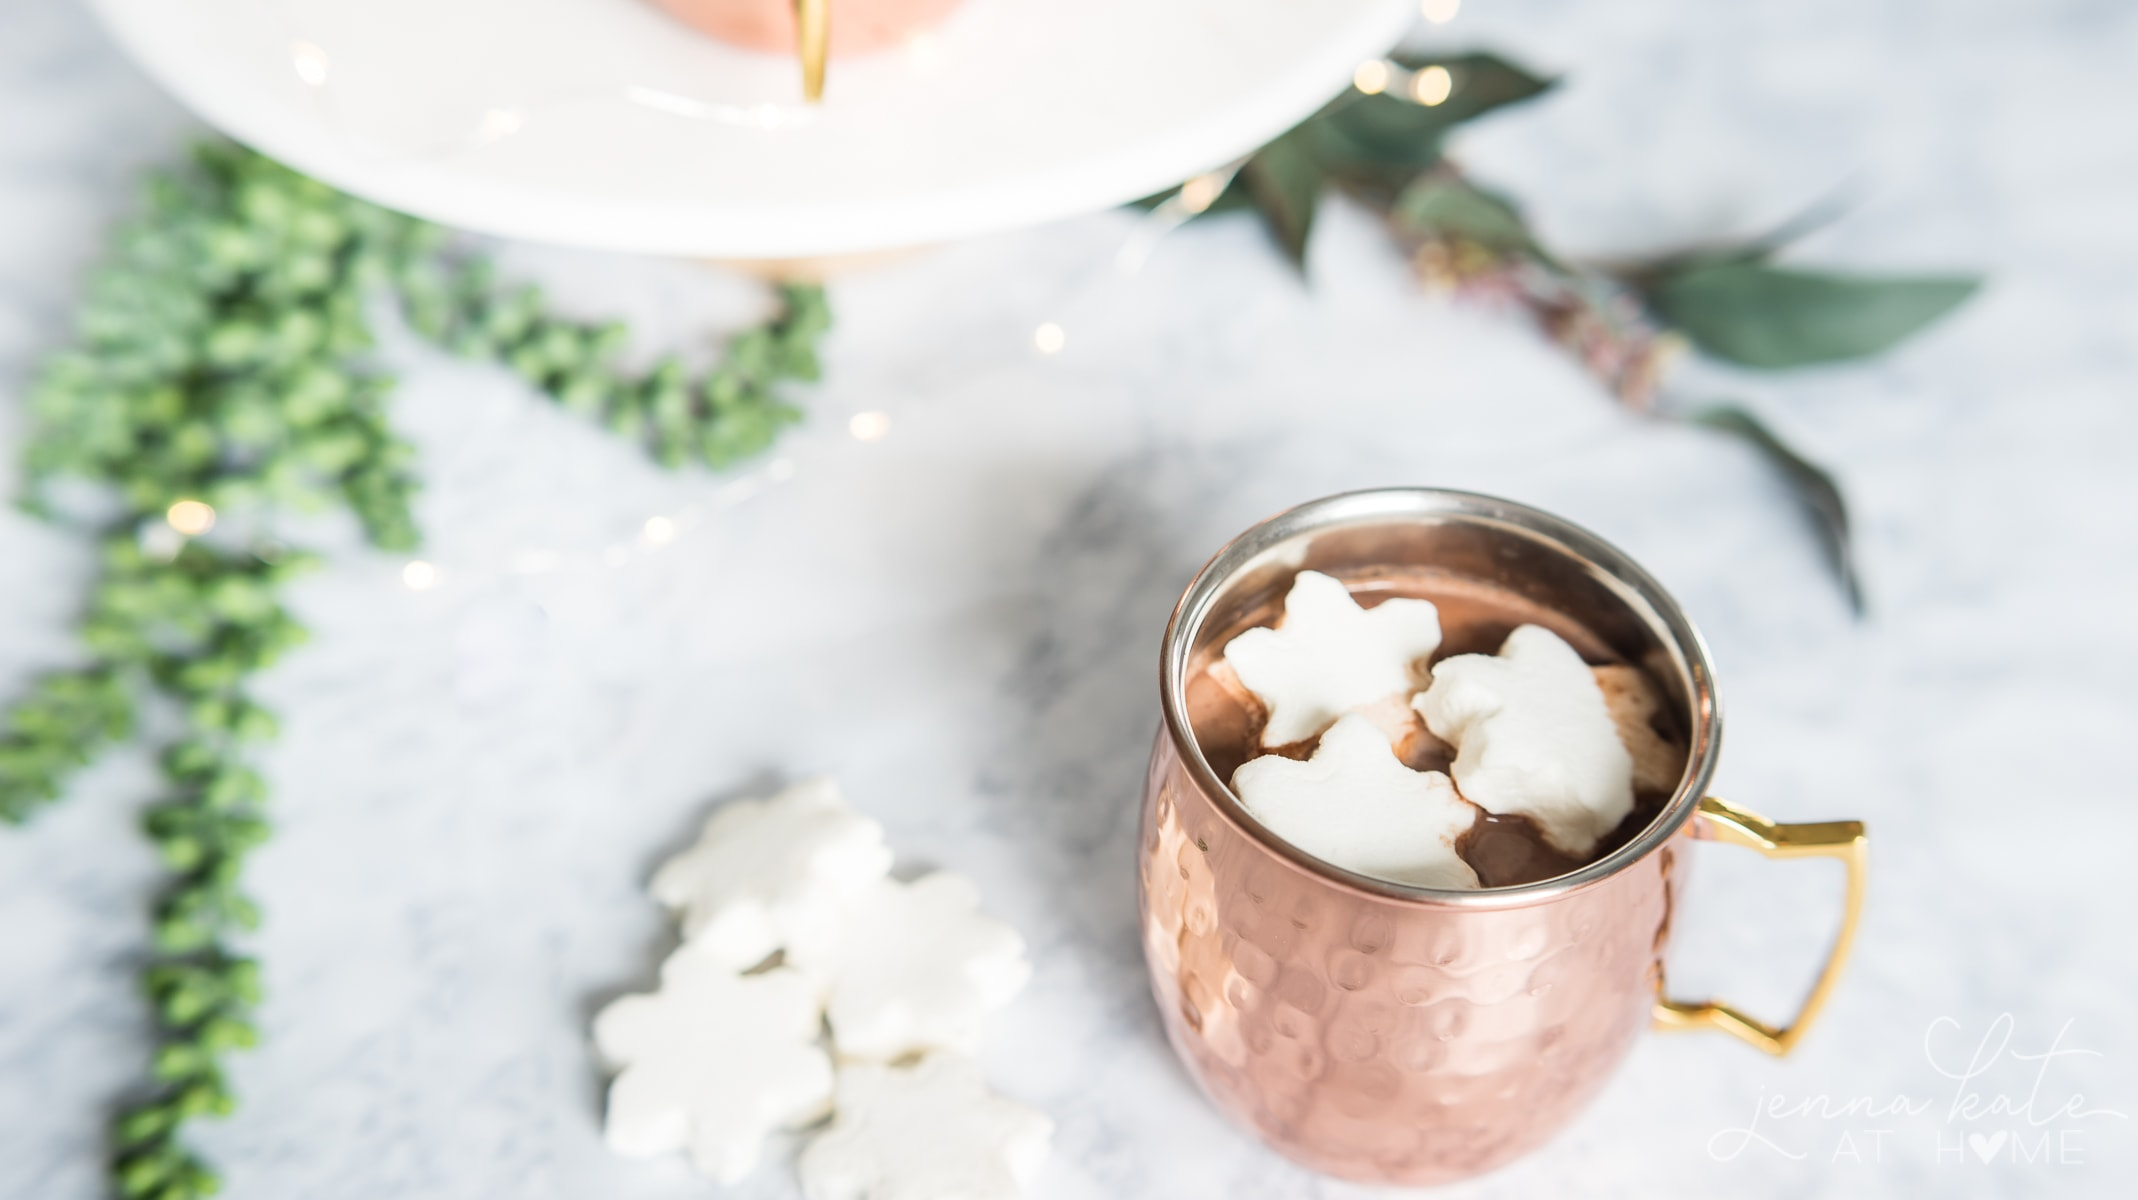 This rich and creamy hot chocolate recipe only calls for 3 ingredients and is perfect for holiday parties